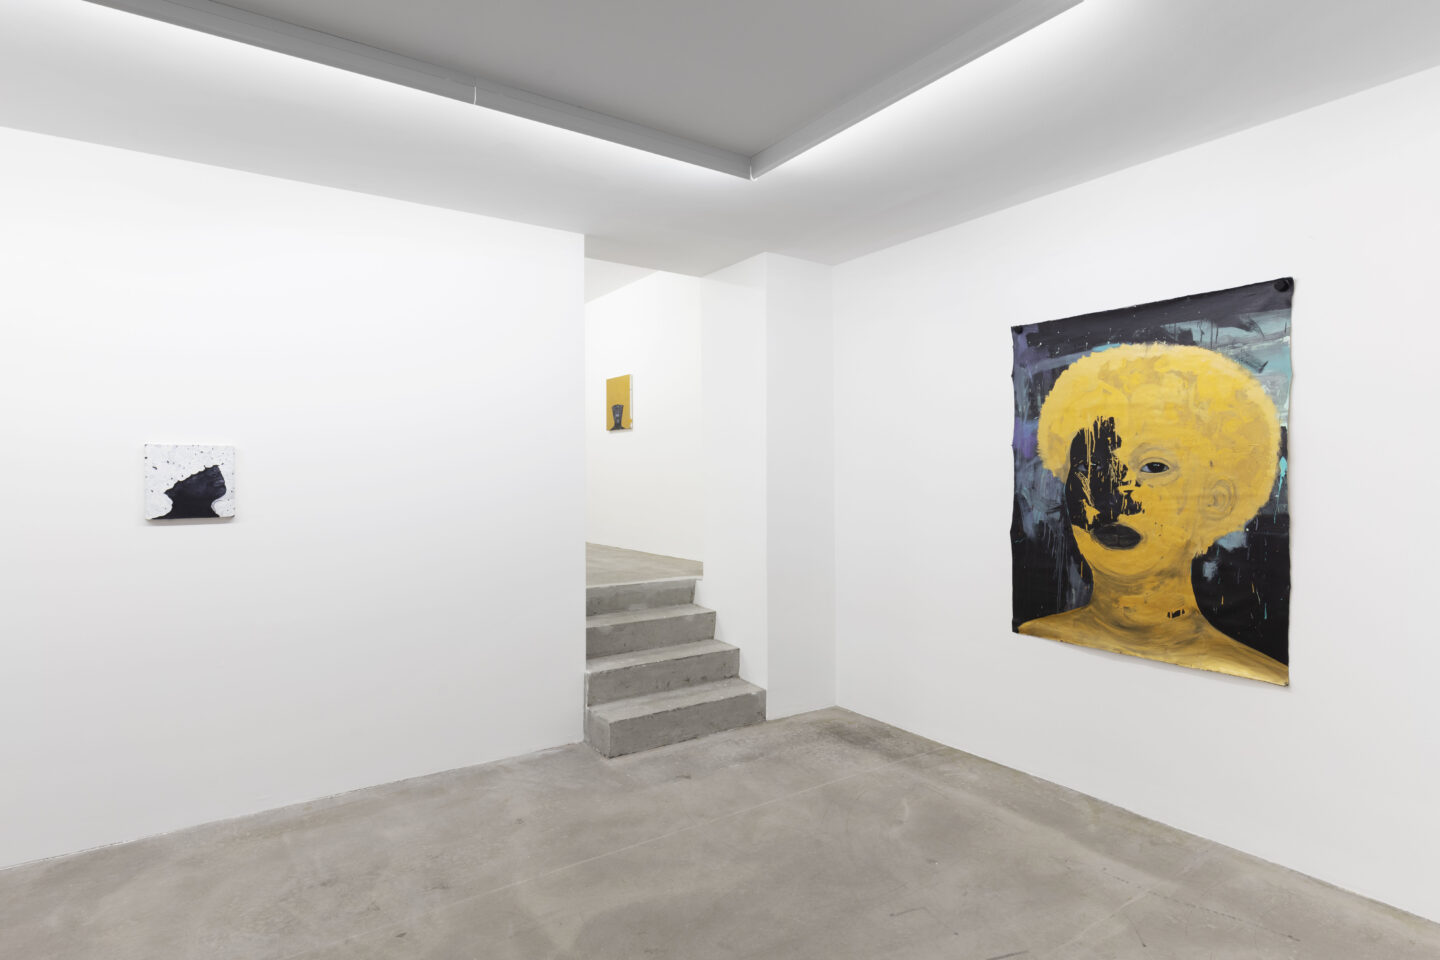 Exhibition View Wonder Buhle Mbambo Soloshow «To Find Me» at GALERIE PHILIPPZOLLINGER, Zurich, 2019 / Photo: Conradin Frei / Courtesy: the artist and Galerie Philipp Zollinger